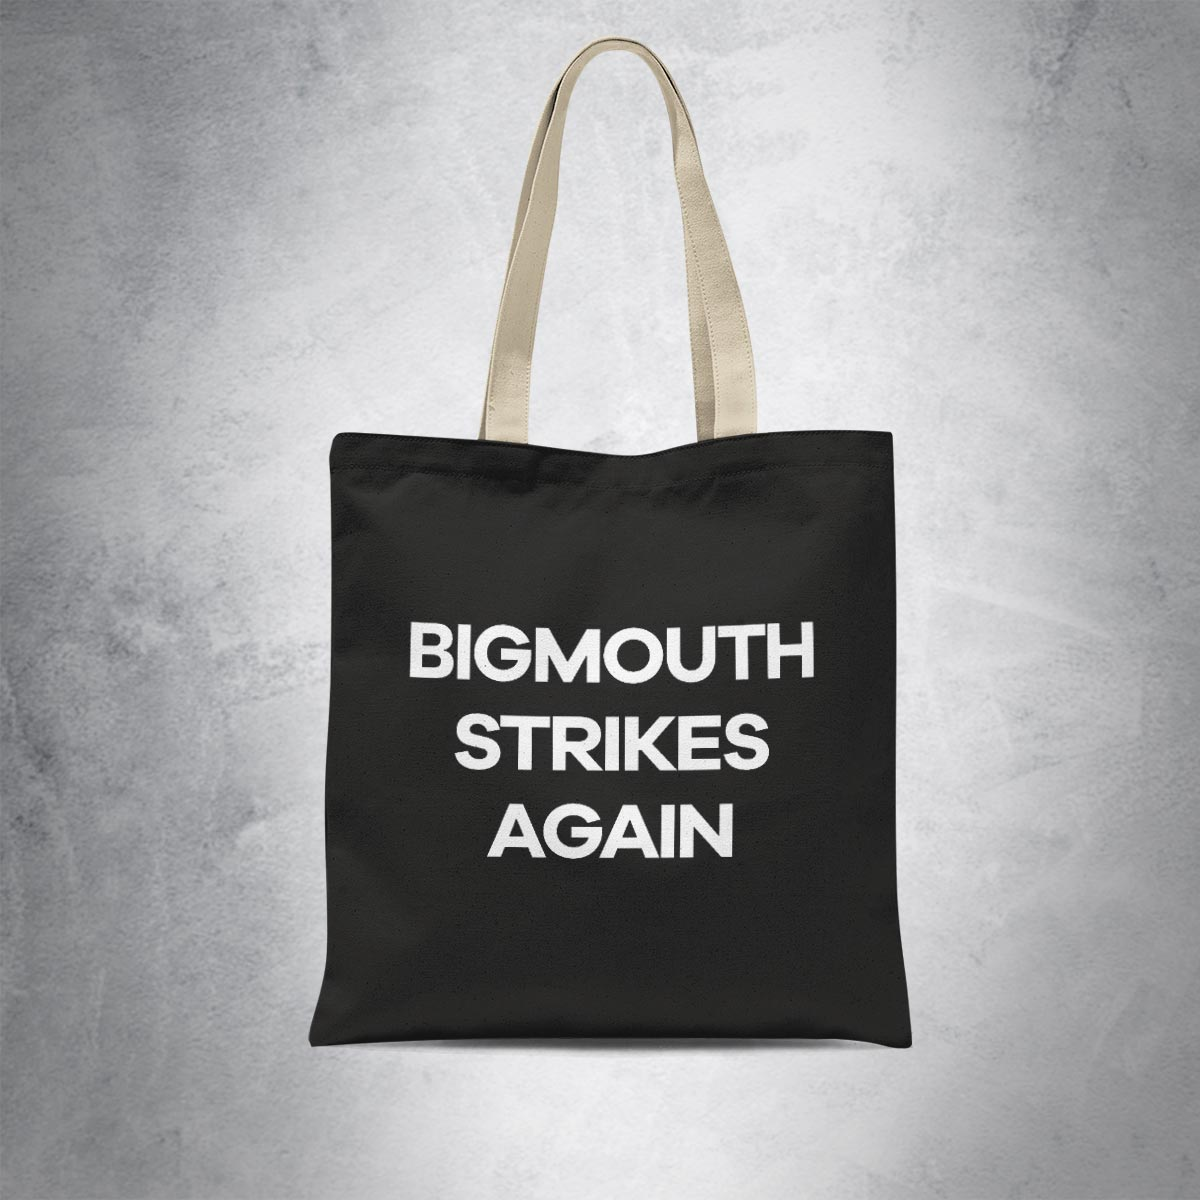 SMITHS - Bigmouth strikes again